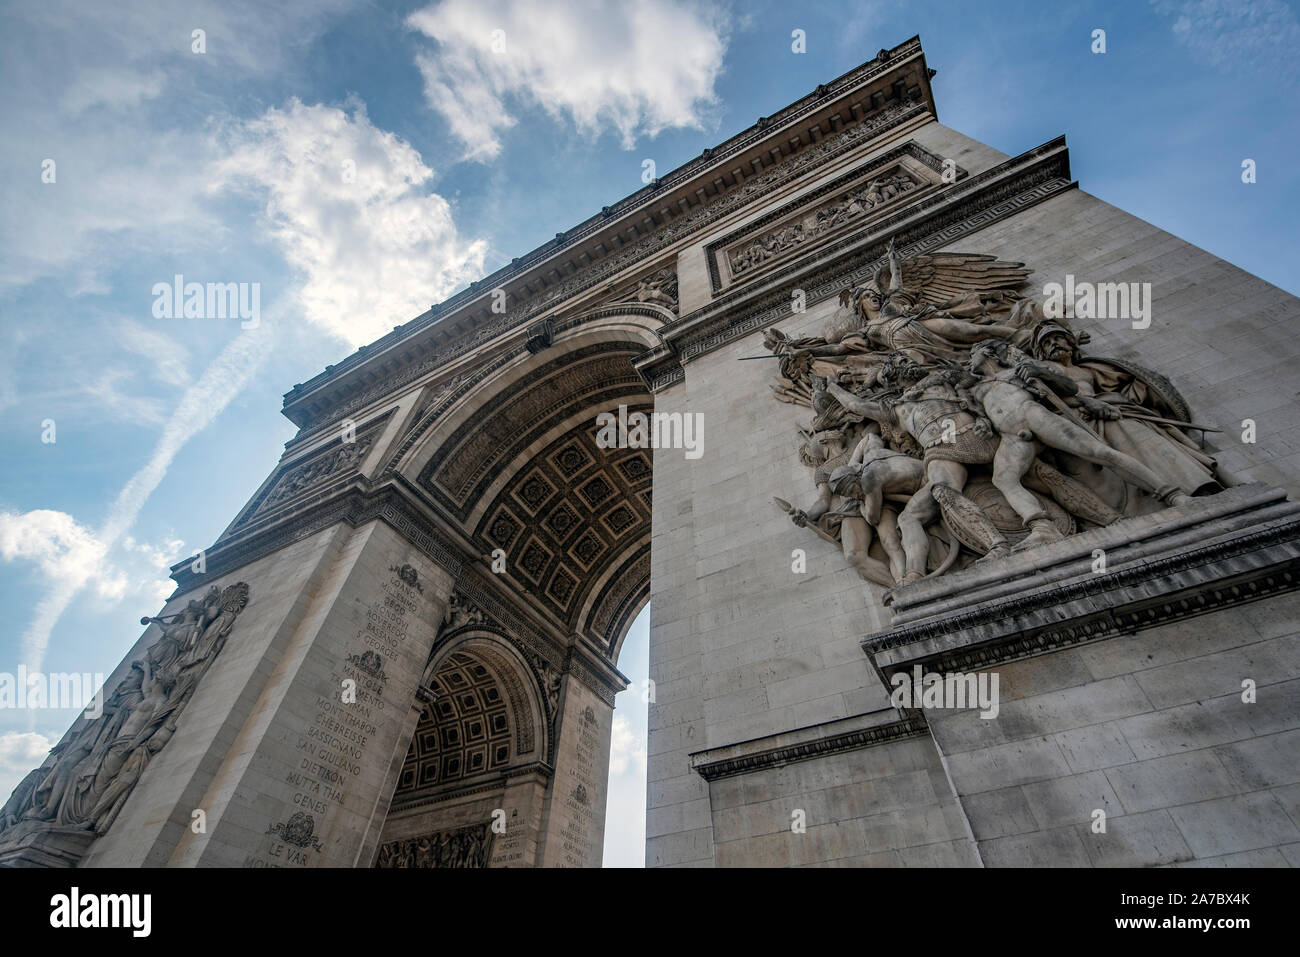 An emblematic monument of Paris, the Arch of Triumph, built between 1806 and 1836 by order of Napoleon Bonaparte to commemorate the victory at the Bat Stock Photo